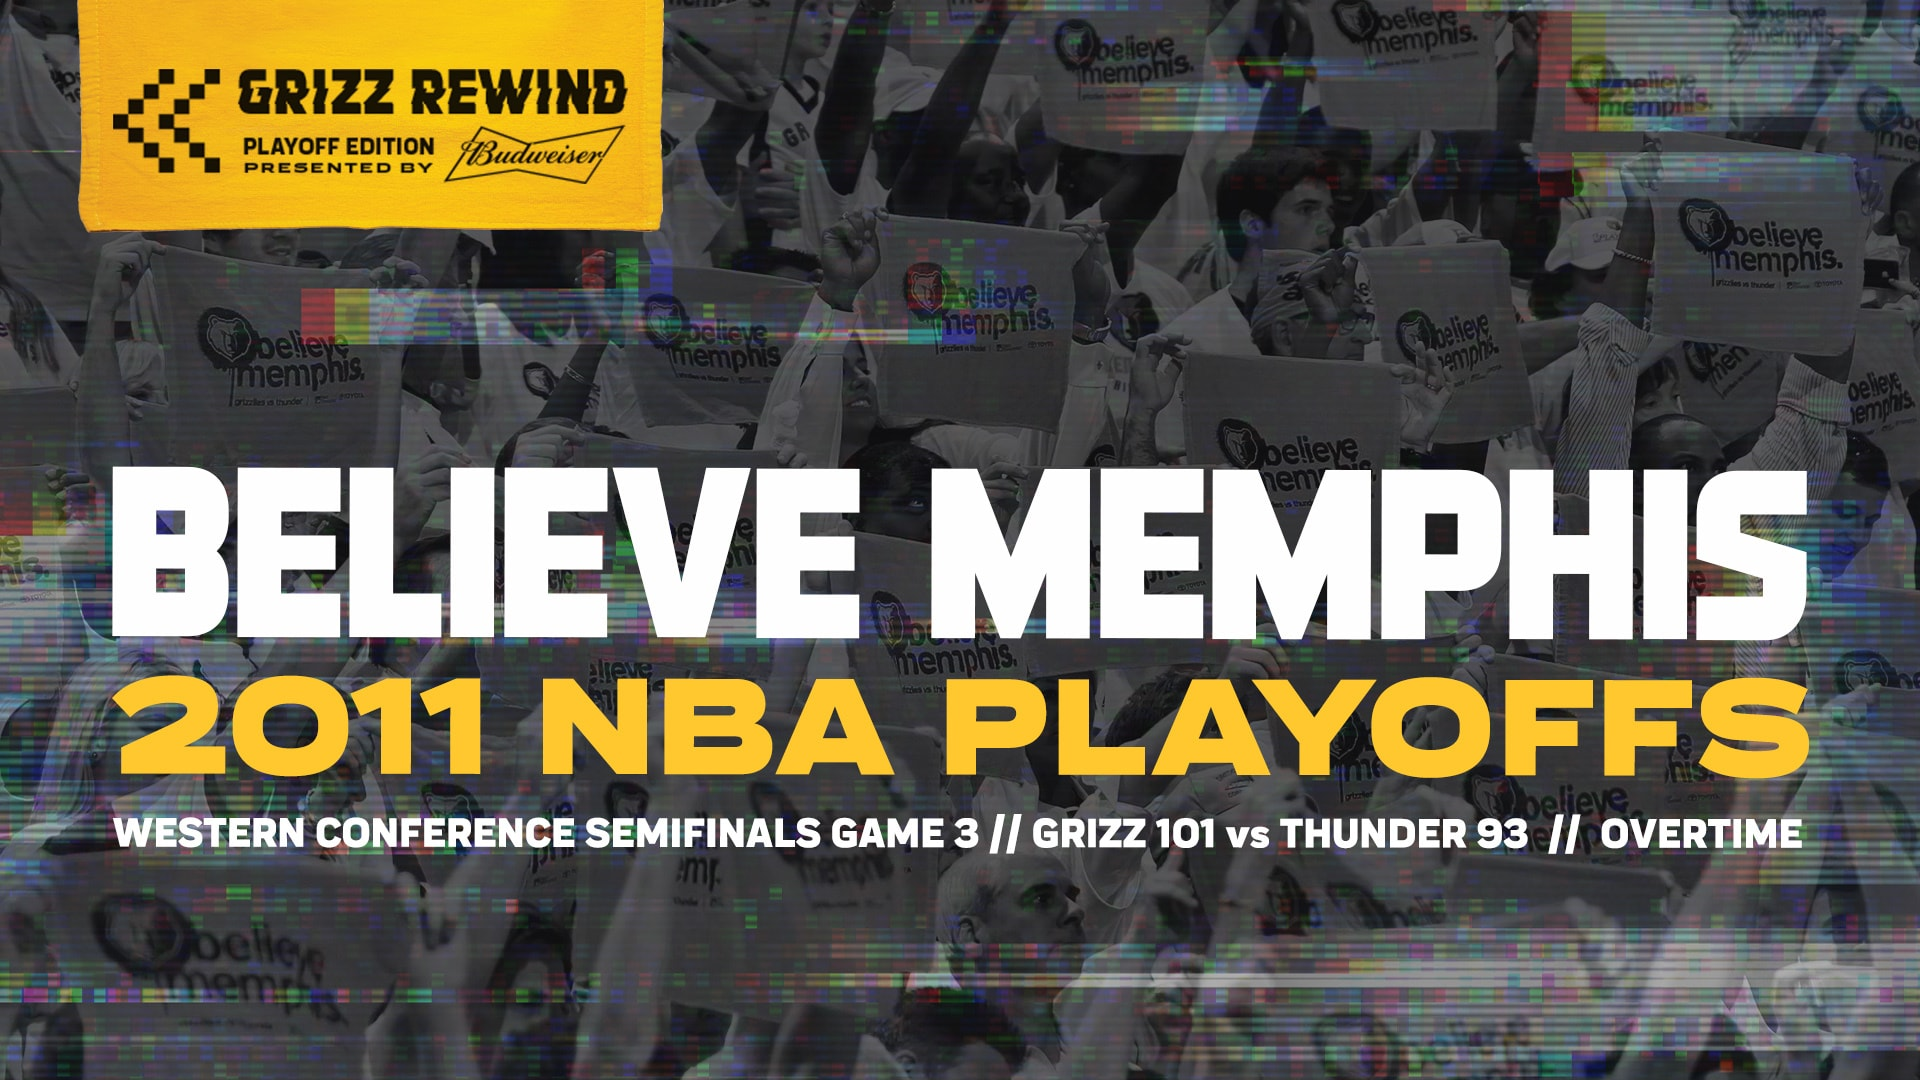 Believe Memphis | Grizz Rewind: Playoff Edition 5.7.11